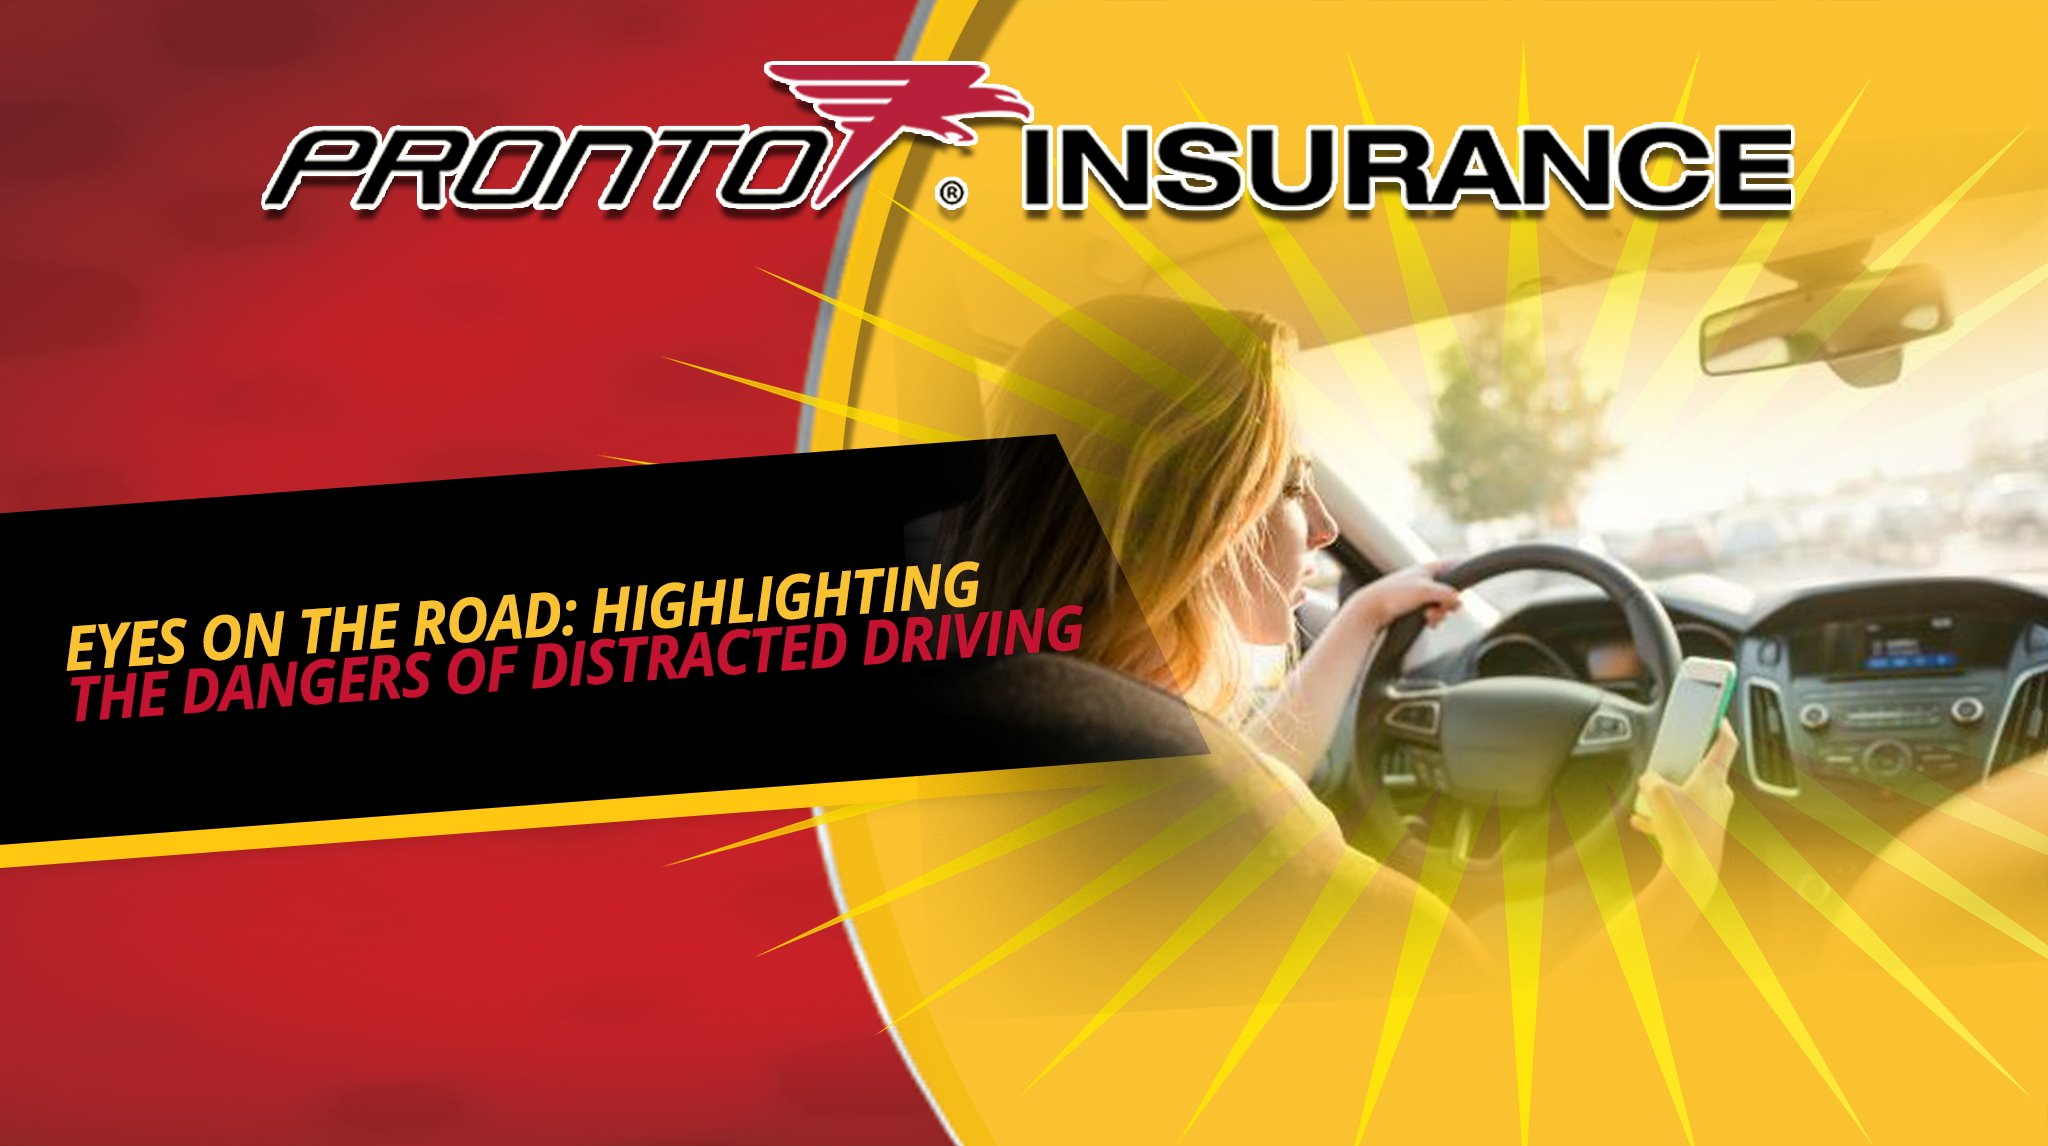 Eyes on the Road: Highlighting the Dangers of Distracted Driving